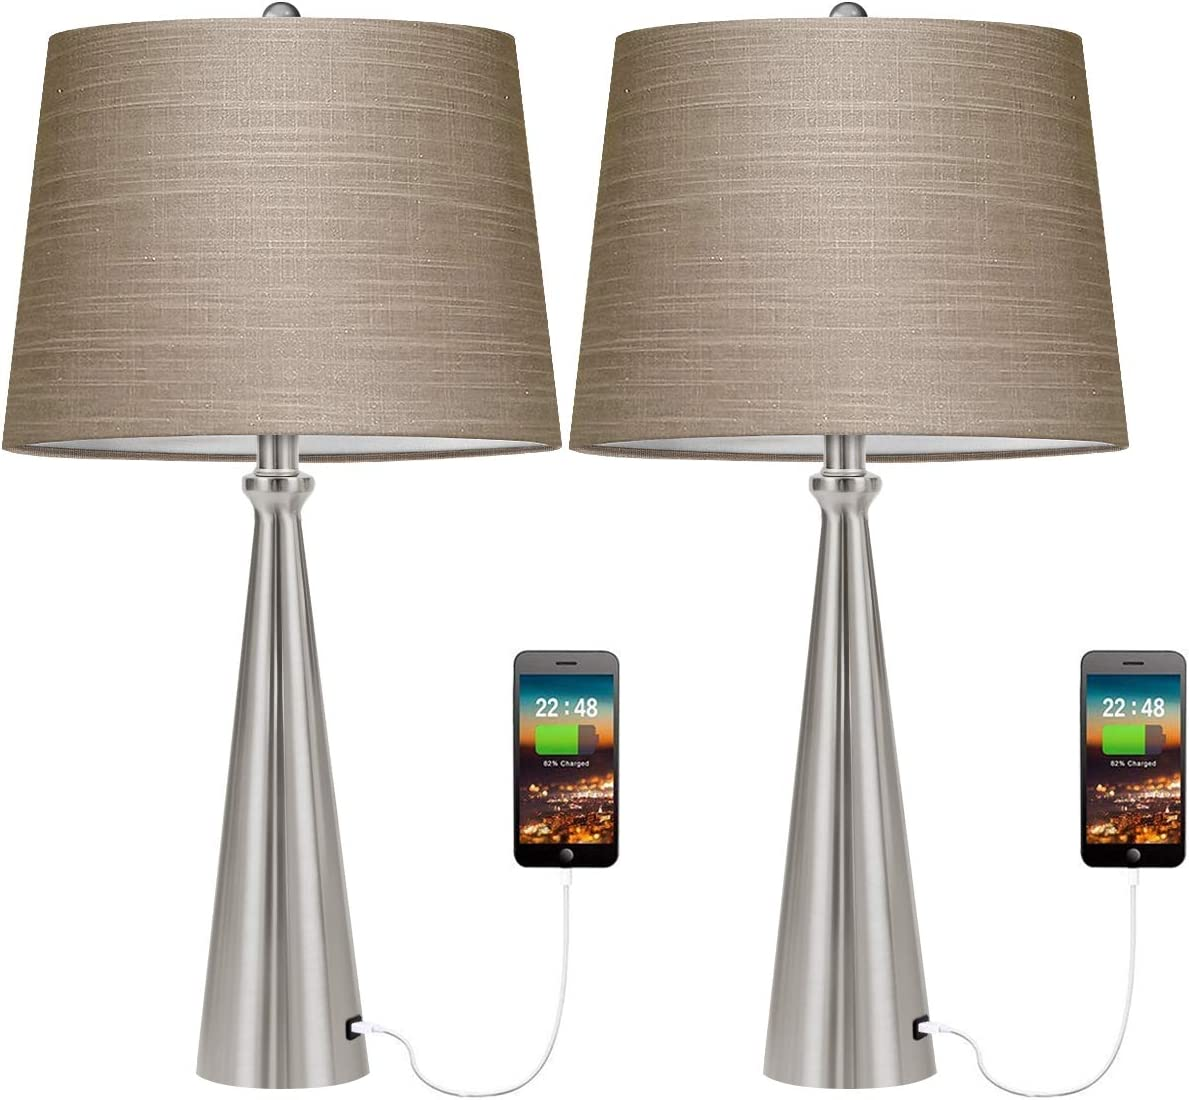 Oneach Modern USB Table Lamp Set of 3 for Living Room Bedroom Bedside  Nightstand Lamps Fabric Shade Accent Light Silver